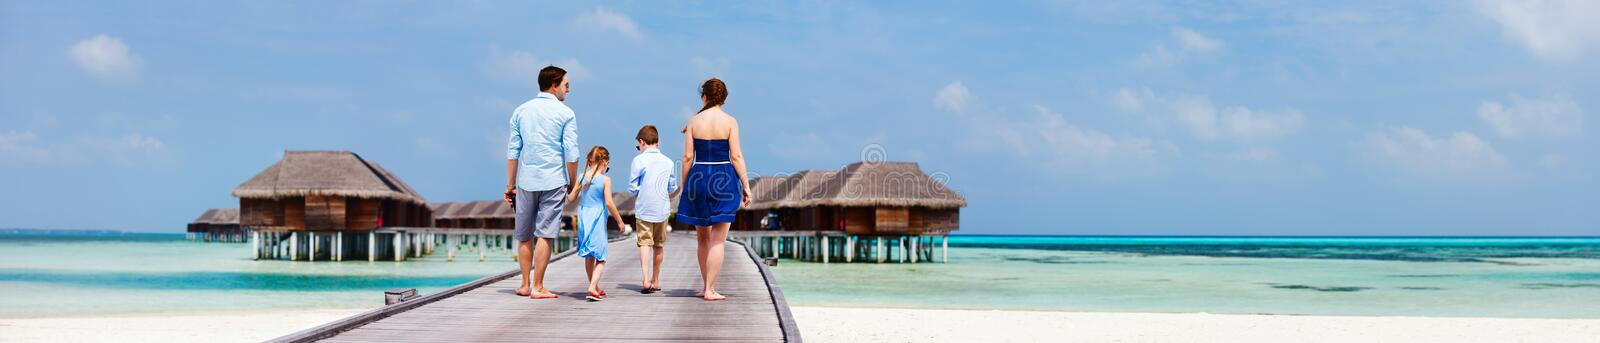 Family on luxury beach vacation royalty free stock images